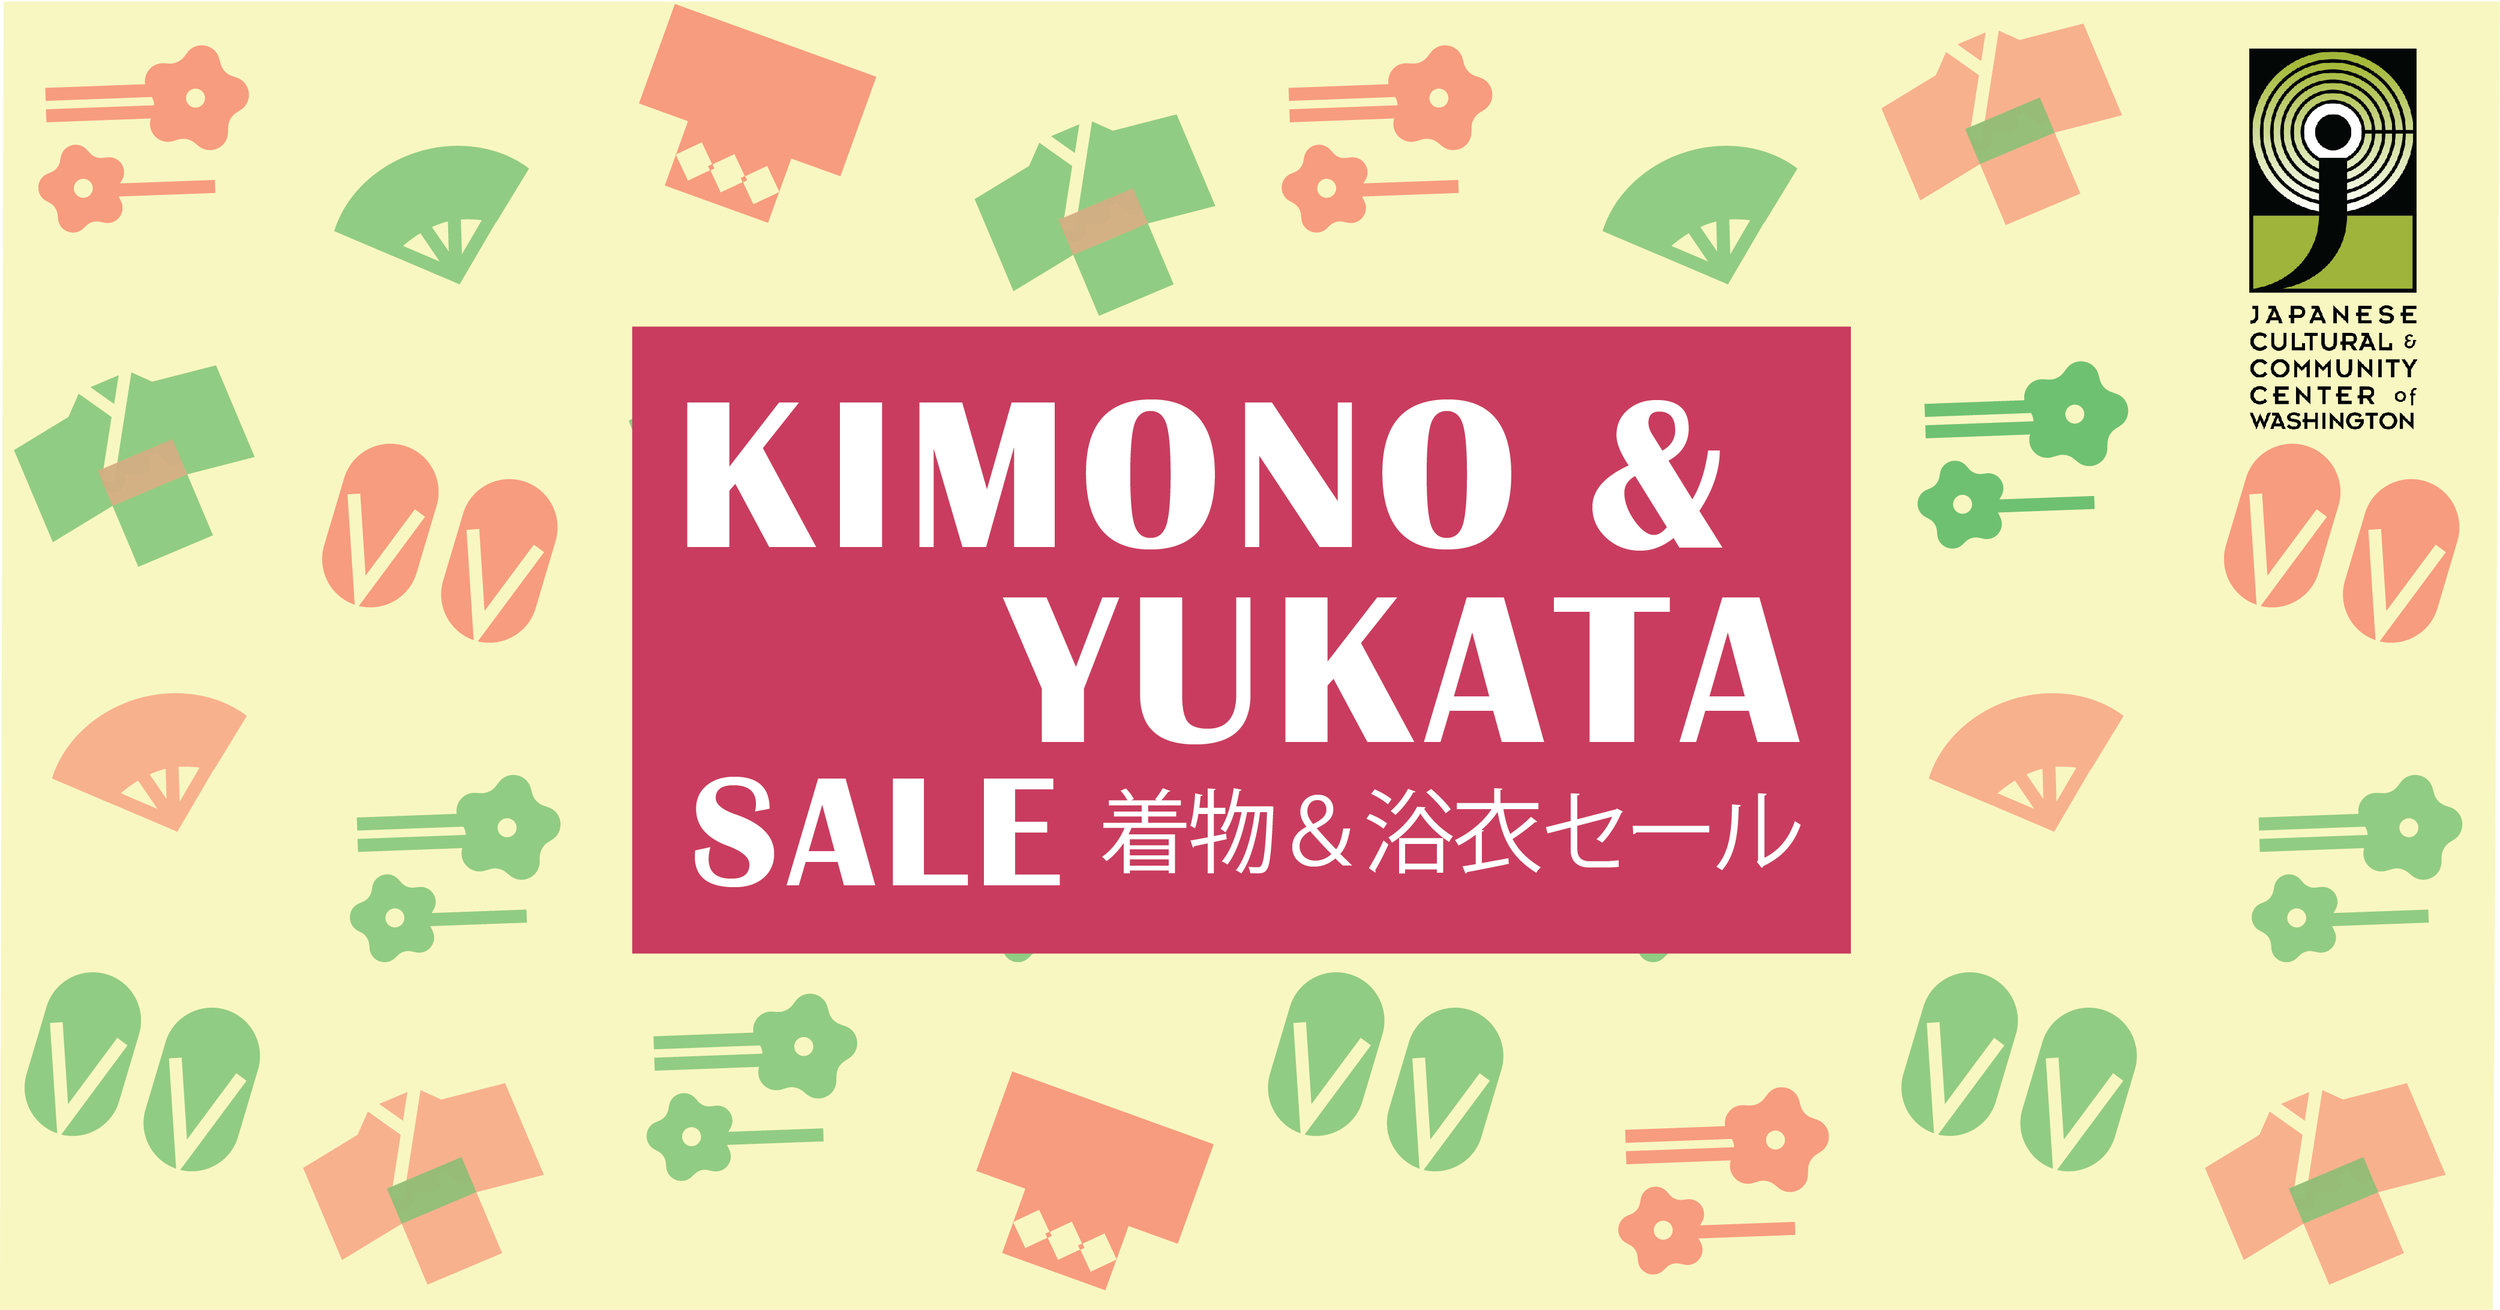 Yukatasale_FB_2_withLOGO.jpg